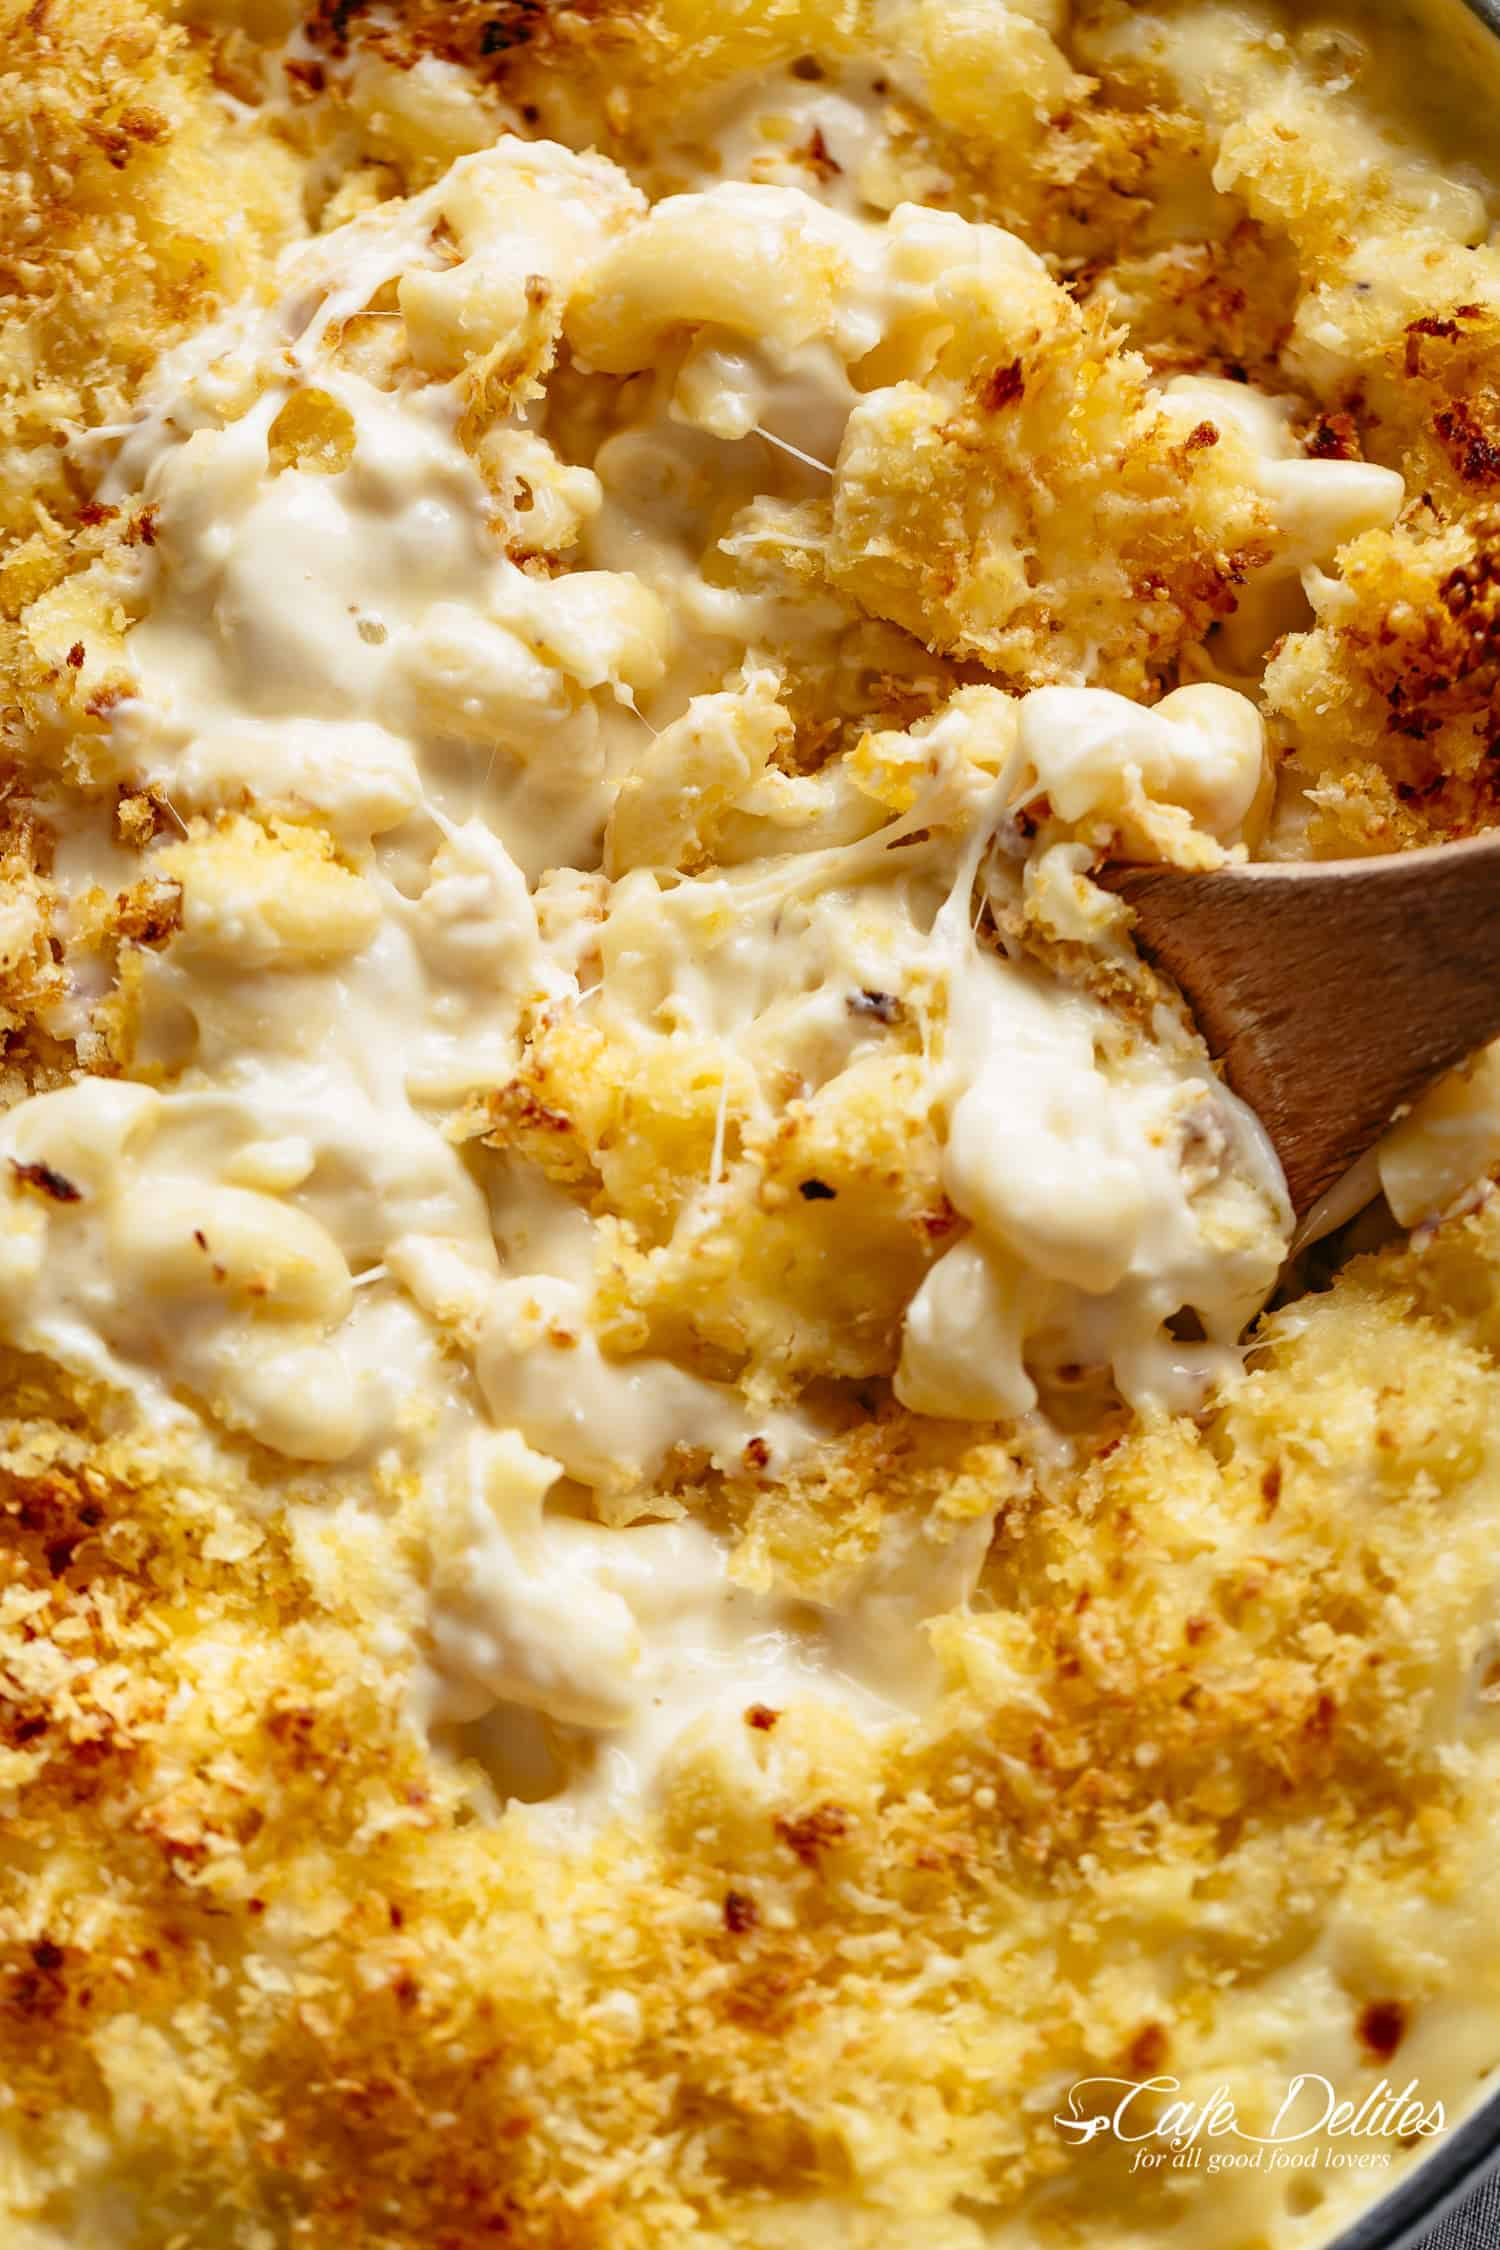 Mac And Cheese is better than the original! A creamy garlic parmesan cheese sauce coats your macaroni, topped with parmesan fried bread crumbs, while saving some calories! | https://cafedelites.com